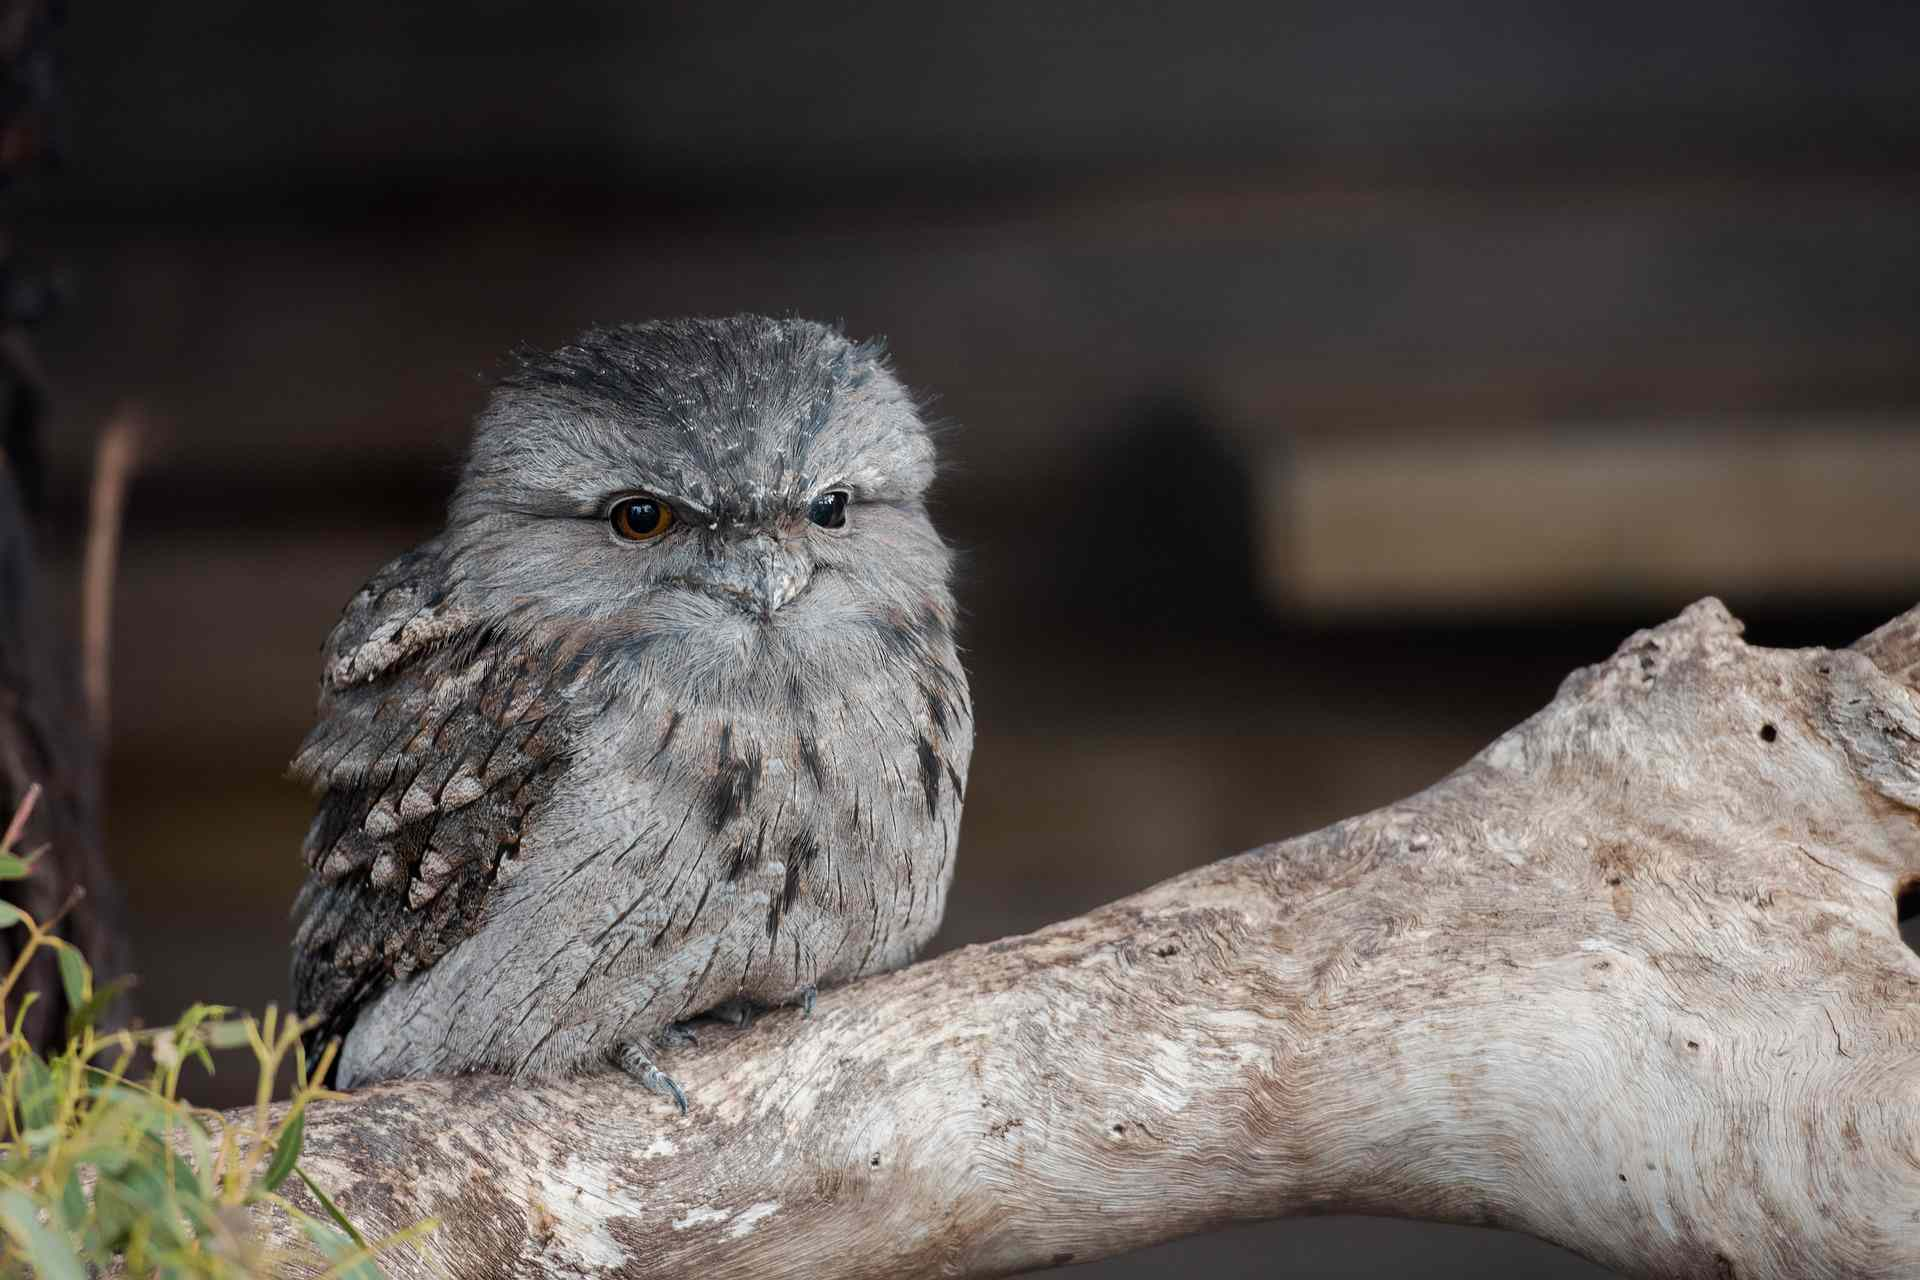 Frogmouth owl sitting on a branch